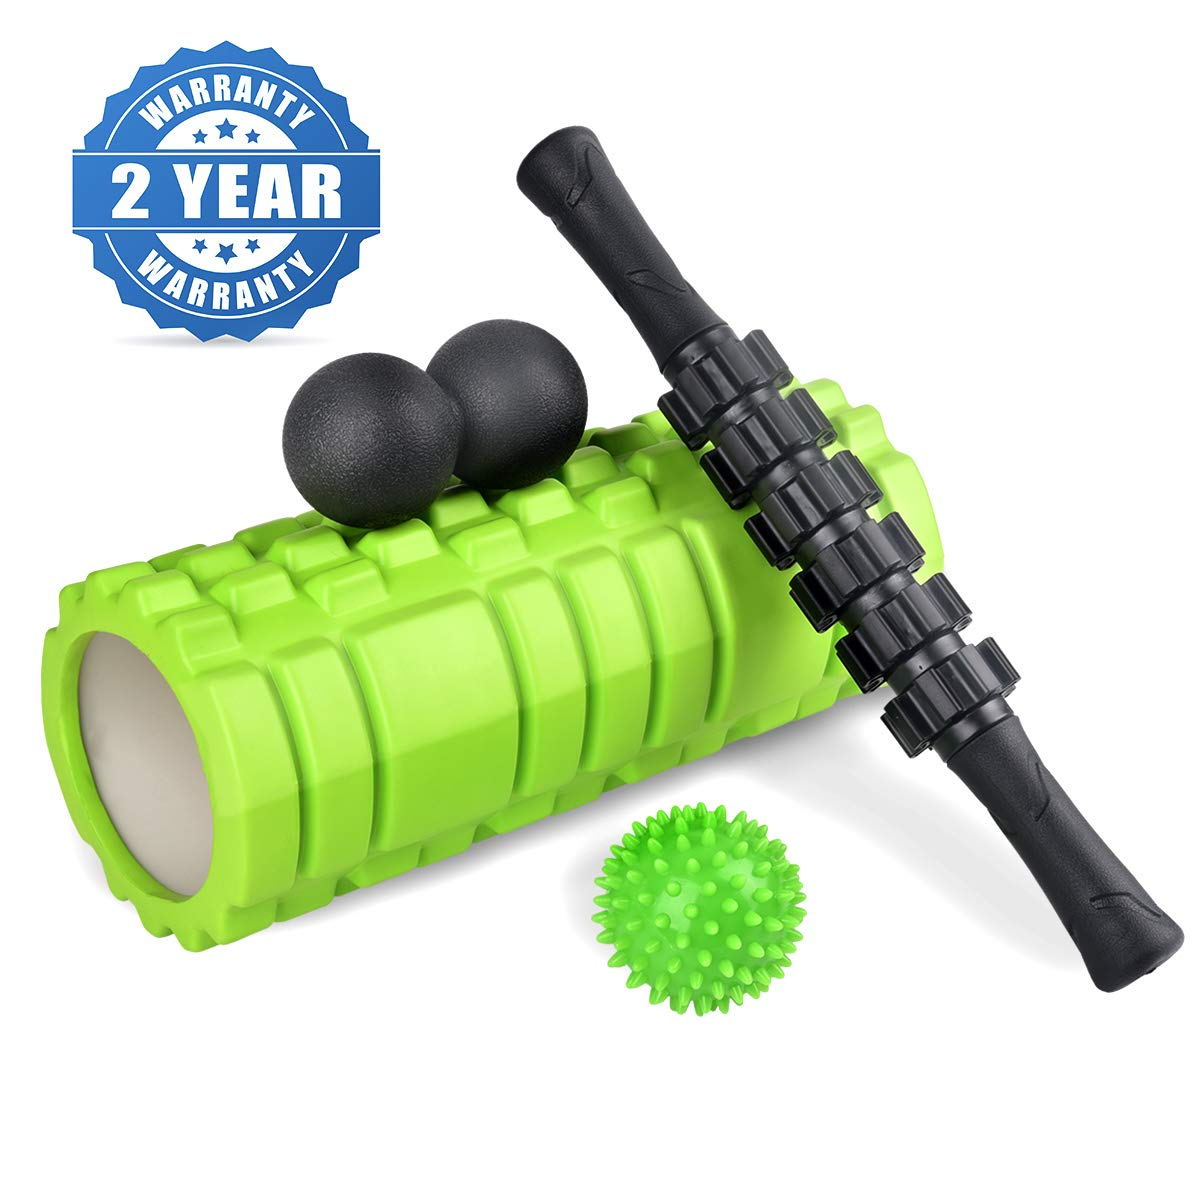 KerKoor Foam Roller Set - Muscle Massage and Myofascial Trigger Point Pain Release, Includes Hollow Core Massage Roller, Muscle Roller Stick, Double Lacrosse Peanut, Spiky Plantar Fasciitis Ball